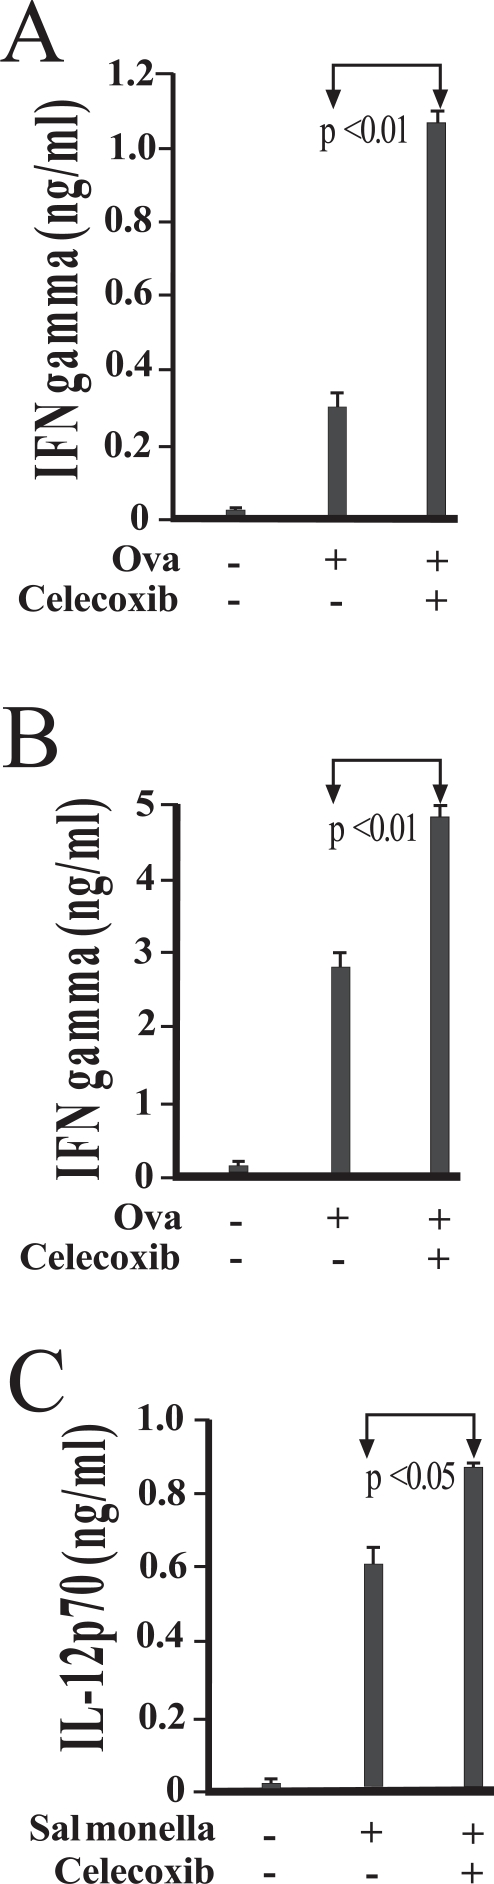 COX-2 activity influences IFN-γ and <t>IL-12p70</t> production in antigen stimulated cultures of DO11.10 CD4+ T cells. Peritoneal macrophages were isolated and cultured in the presence of medium alone (A) or viable Salmonella (B) . Following exposure for 45 minutes, cells were washed to remove any extracellular bacteria with gentamicin-containing medium. Magnetically separated splenic DO11.10 CD4 + T cells, B cells, and OVA peptide were added. To assess the role of COX-2, some cultures were supplemented with 1 uM celecoxib 20 minutes prior to infection. Levels of IFN-γ (A and B) and IL-12p70 (C) in 48-hour supernatants were measured by enzyme immunoassay, and are reported as mean values of triplicate determinations. These studies were performed three times with similar results.